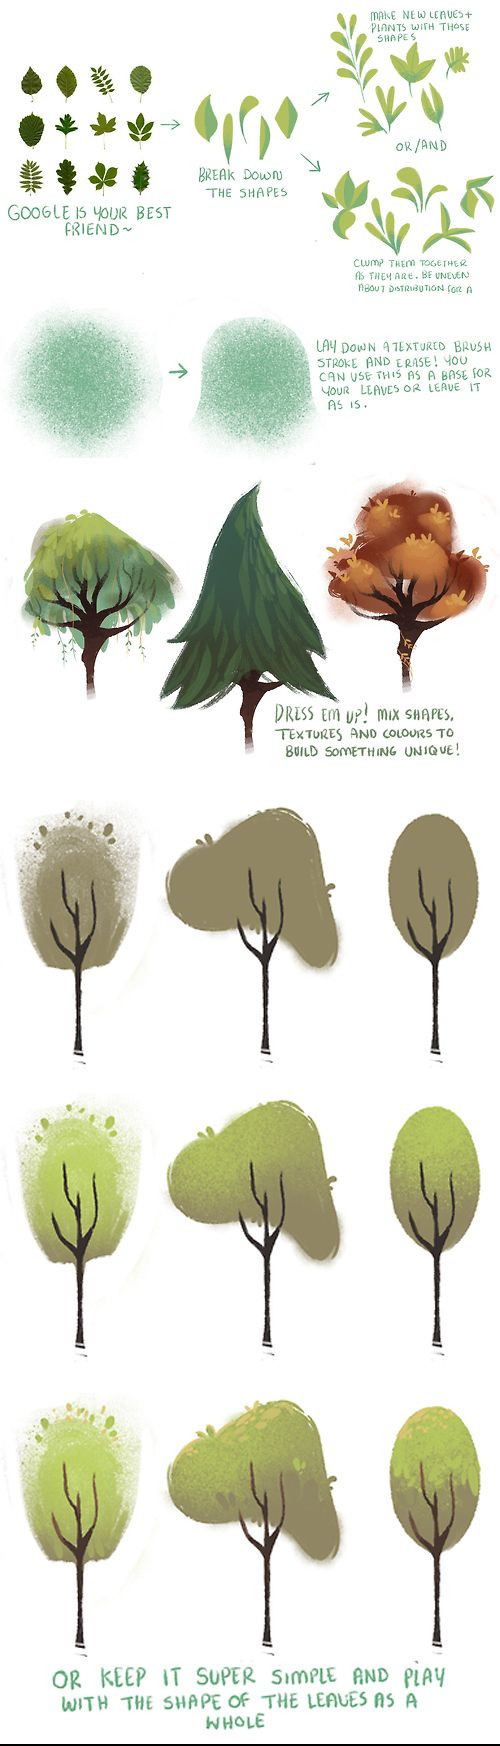 Super simple stylized tree tutorial.   You can download the brushes here: https://www.dropbox.com/s/sl3d5em49sme2bj/Brushes_Jan_2014.abr